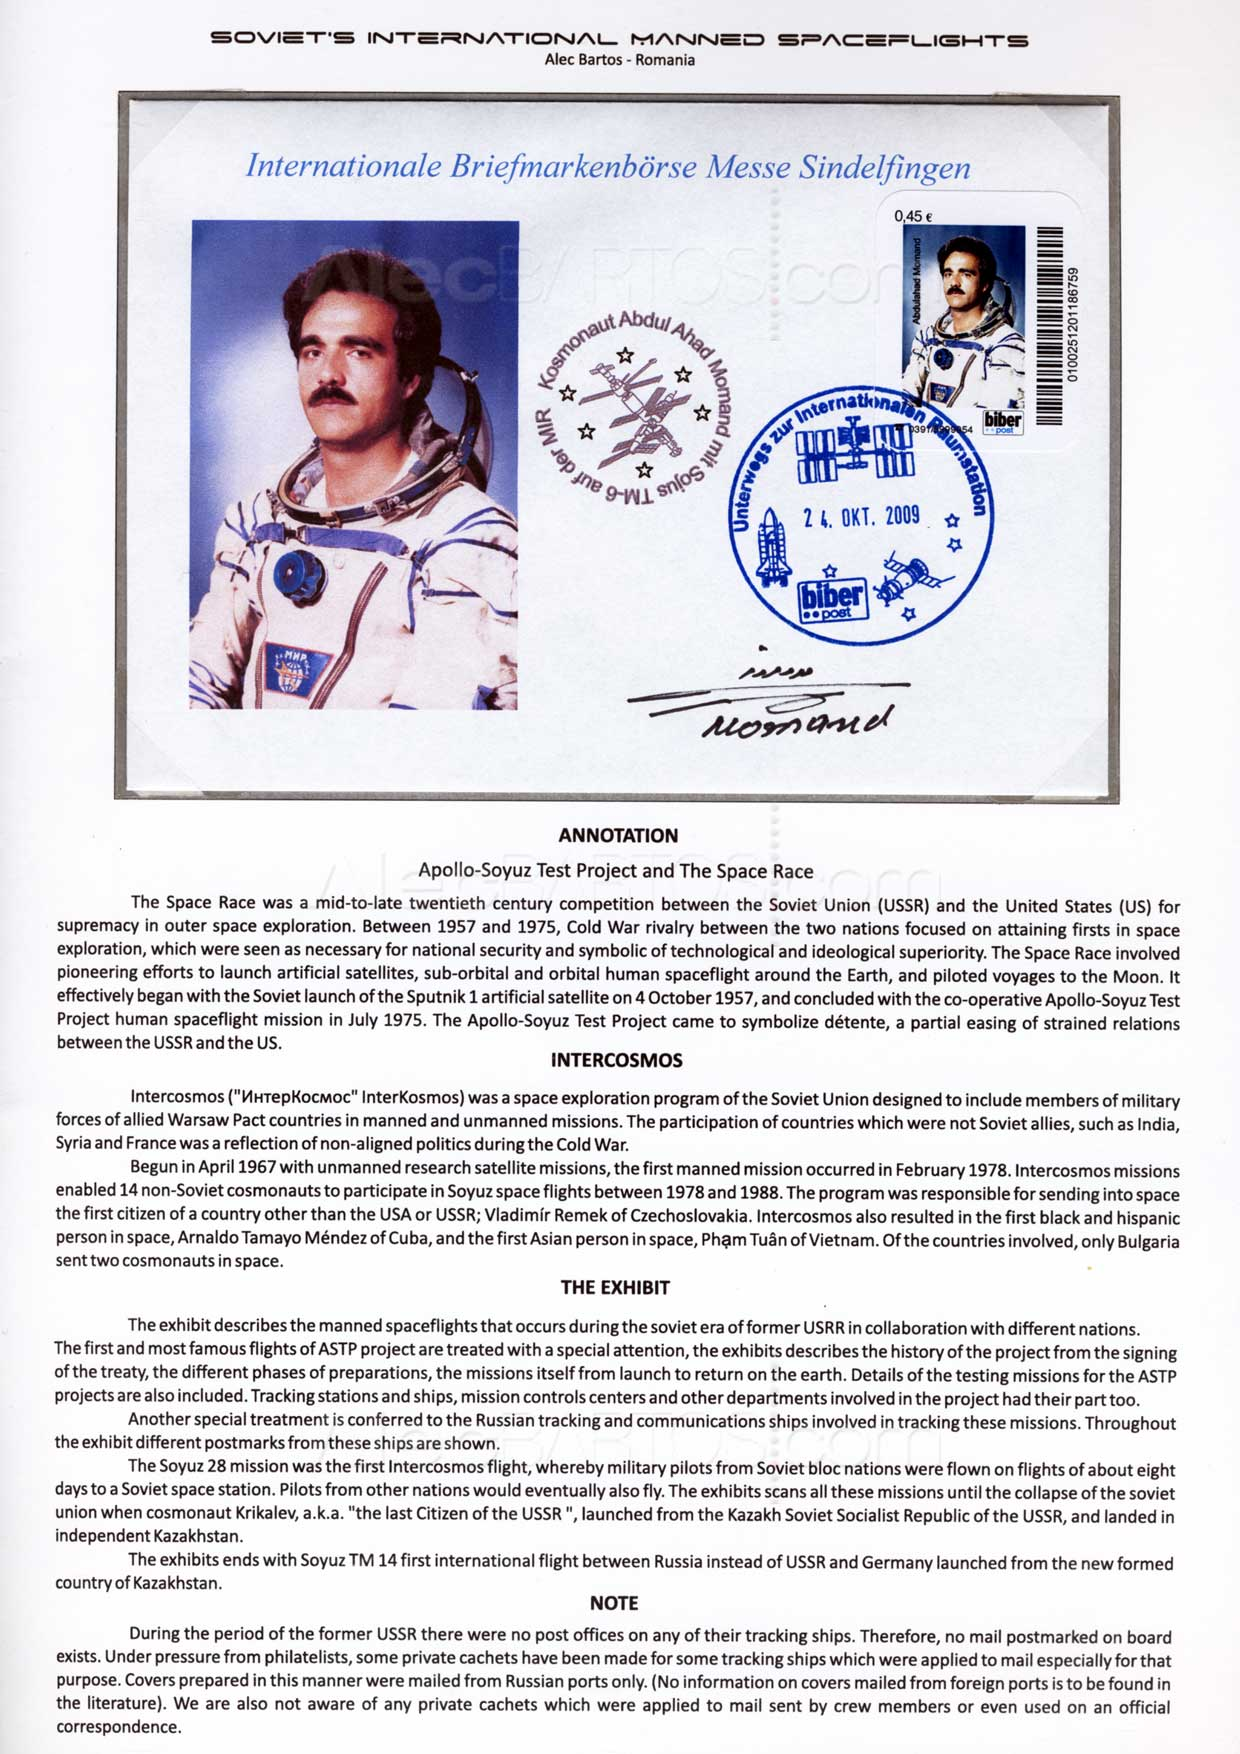 soviets_international_manned_spaceflights_alec_bartos_annotation_p1-copy